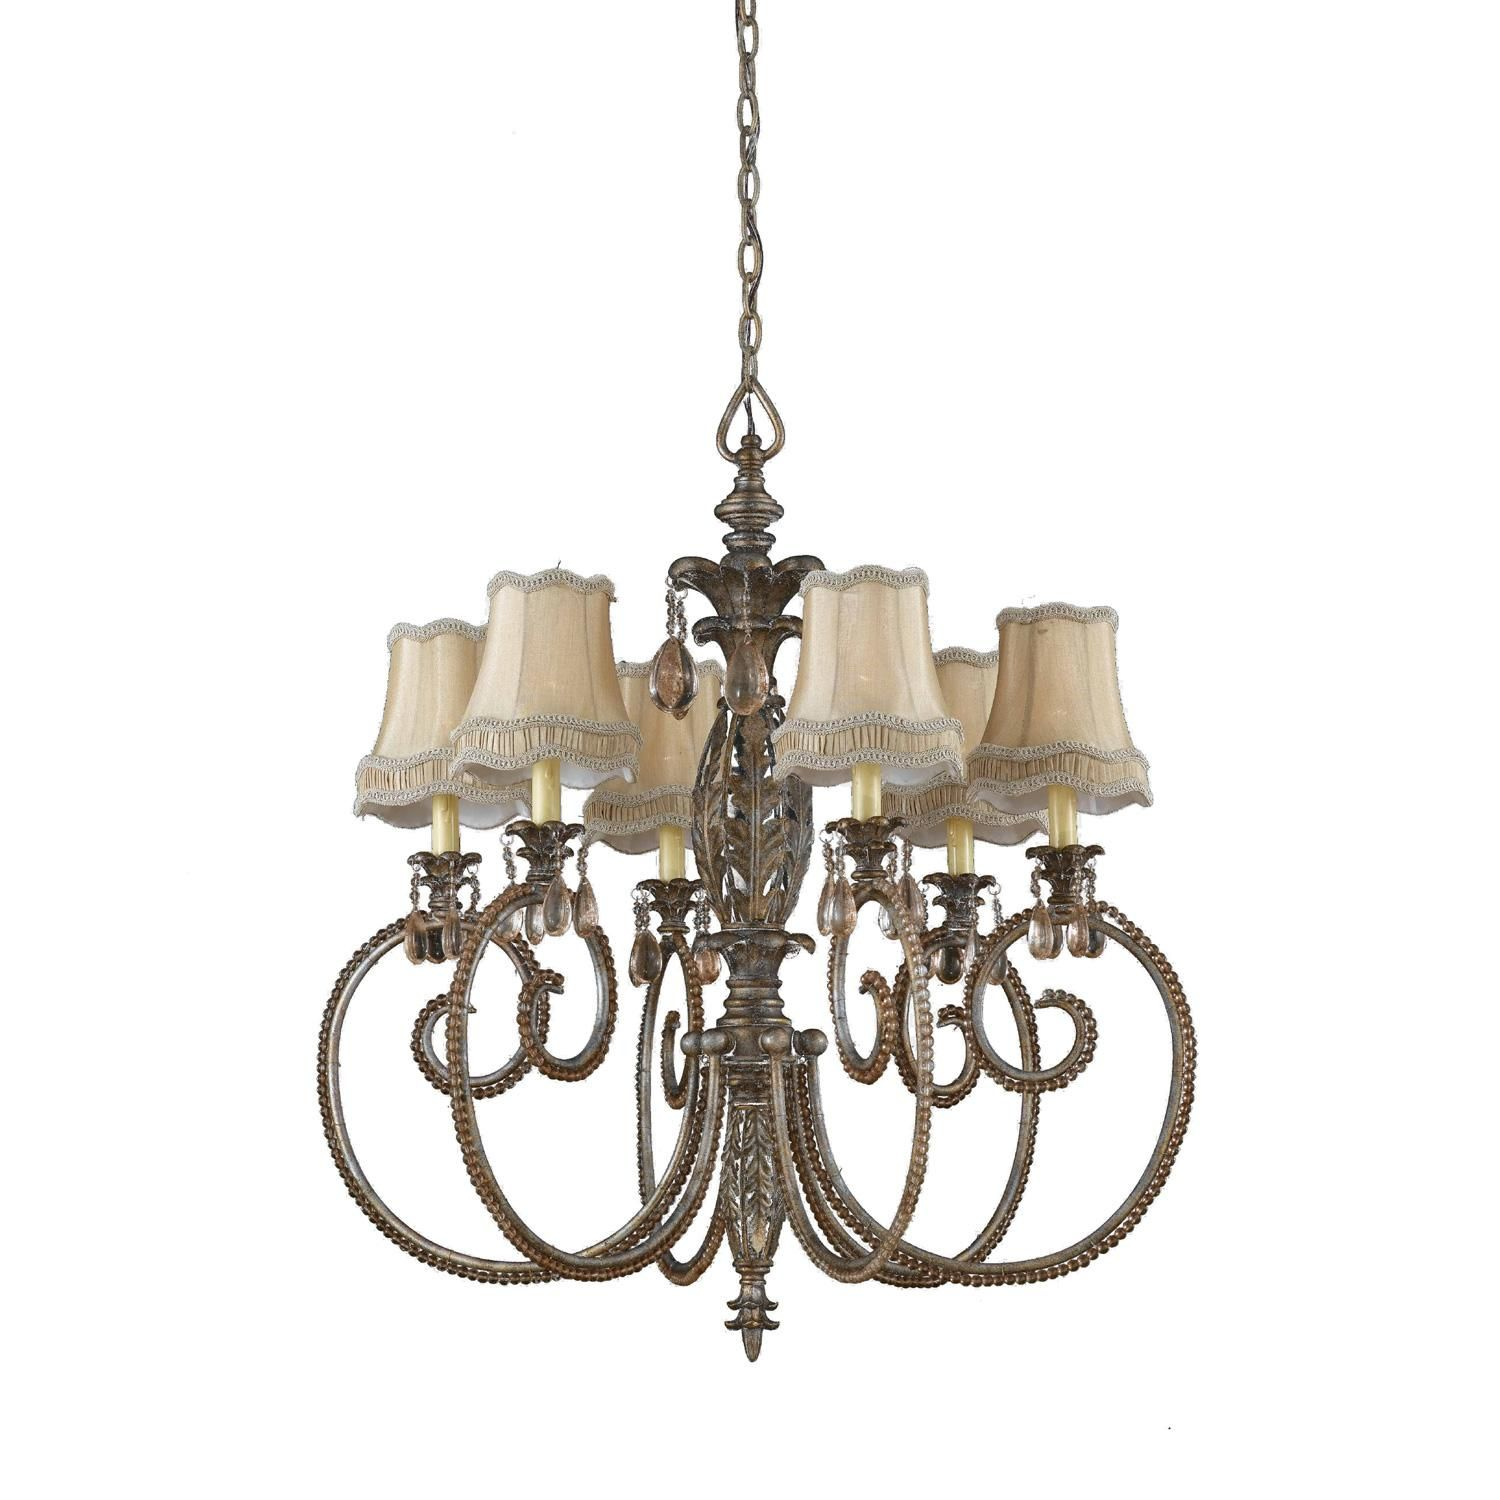 Chandelier Wiring Parts Harness Add Mardi Gras Style To The Dining Room With This Elegant Pewter Pinterest 1500x1500